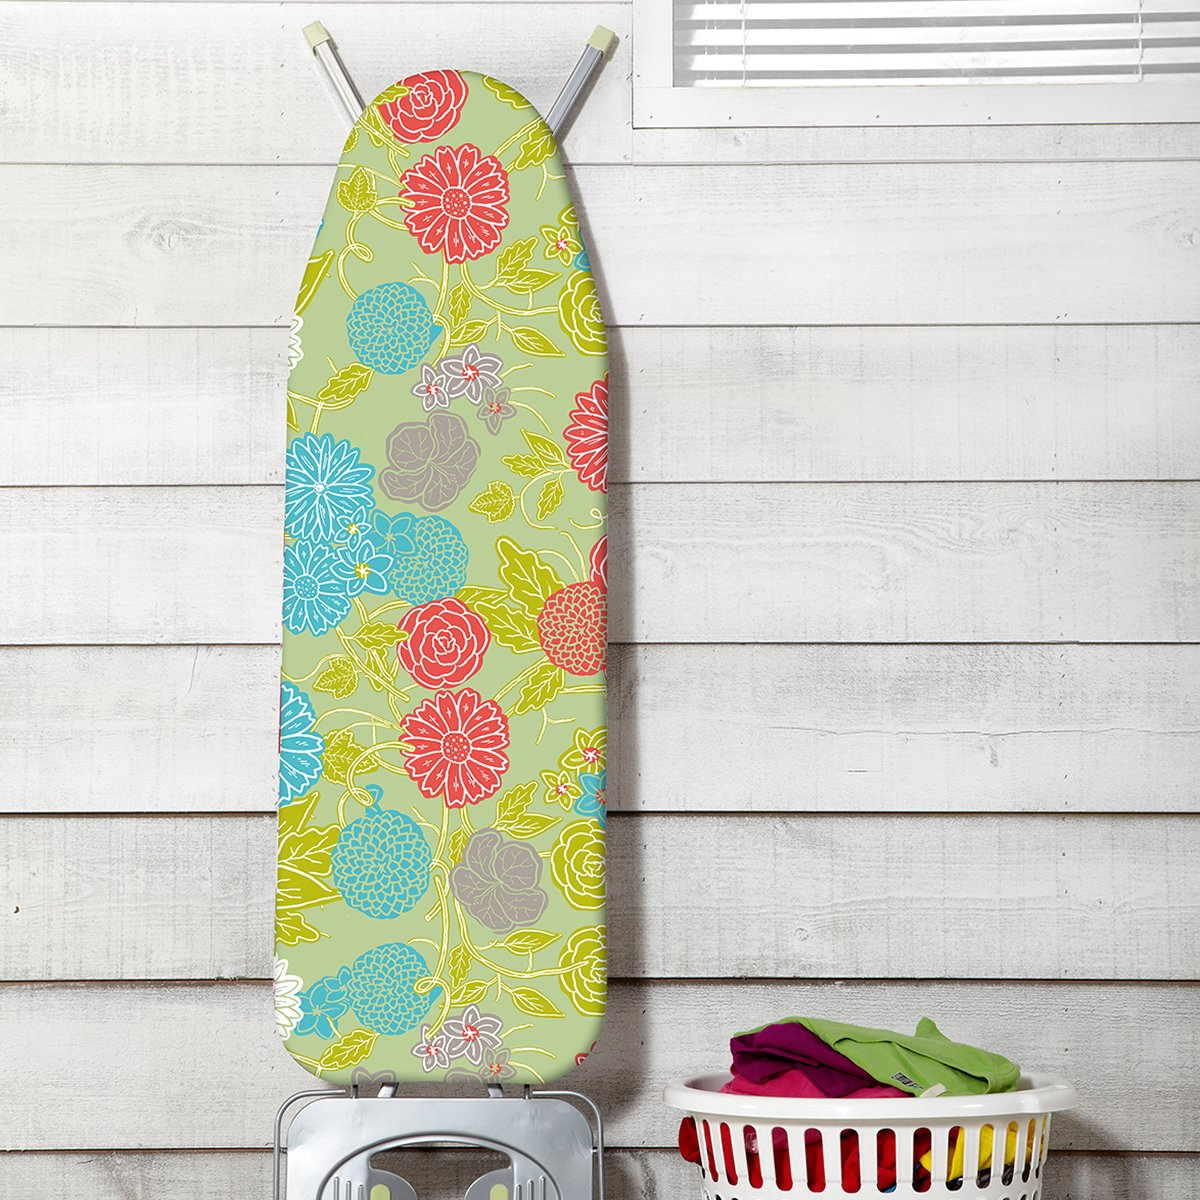 JML FastFit Ironing Board Cover - Ultimate: 100% Cotton Non Slip Multi Colour i04is10d3b00g000